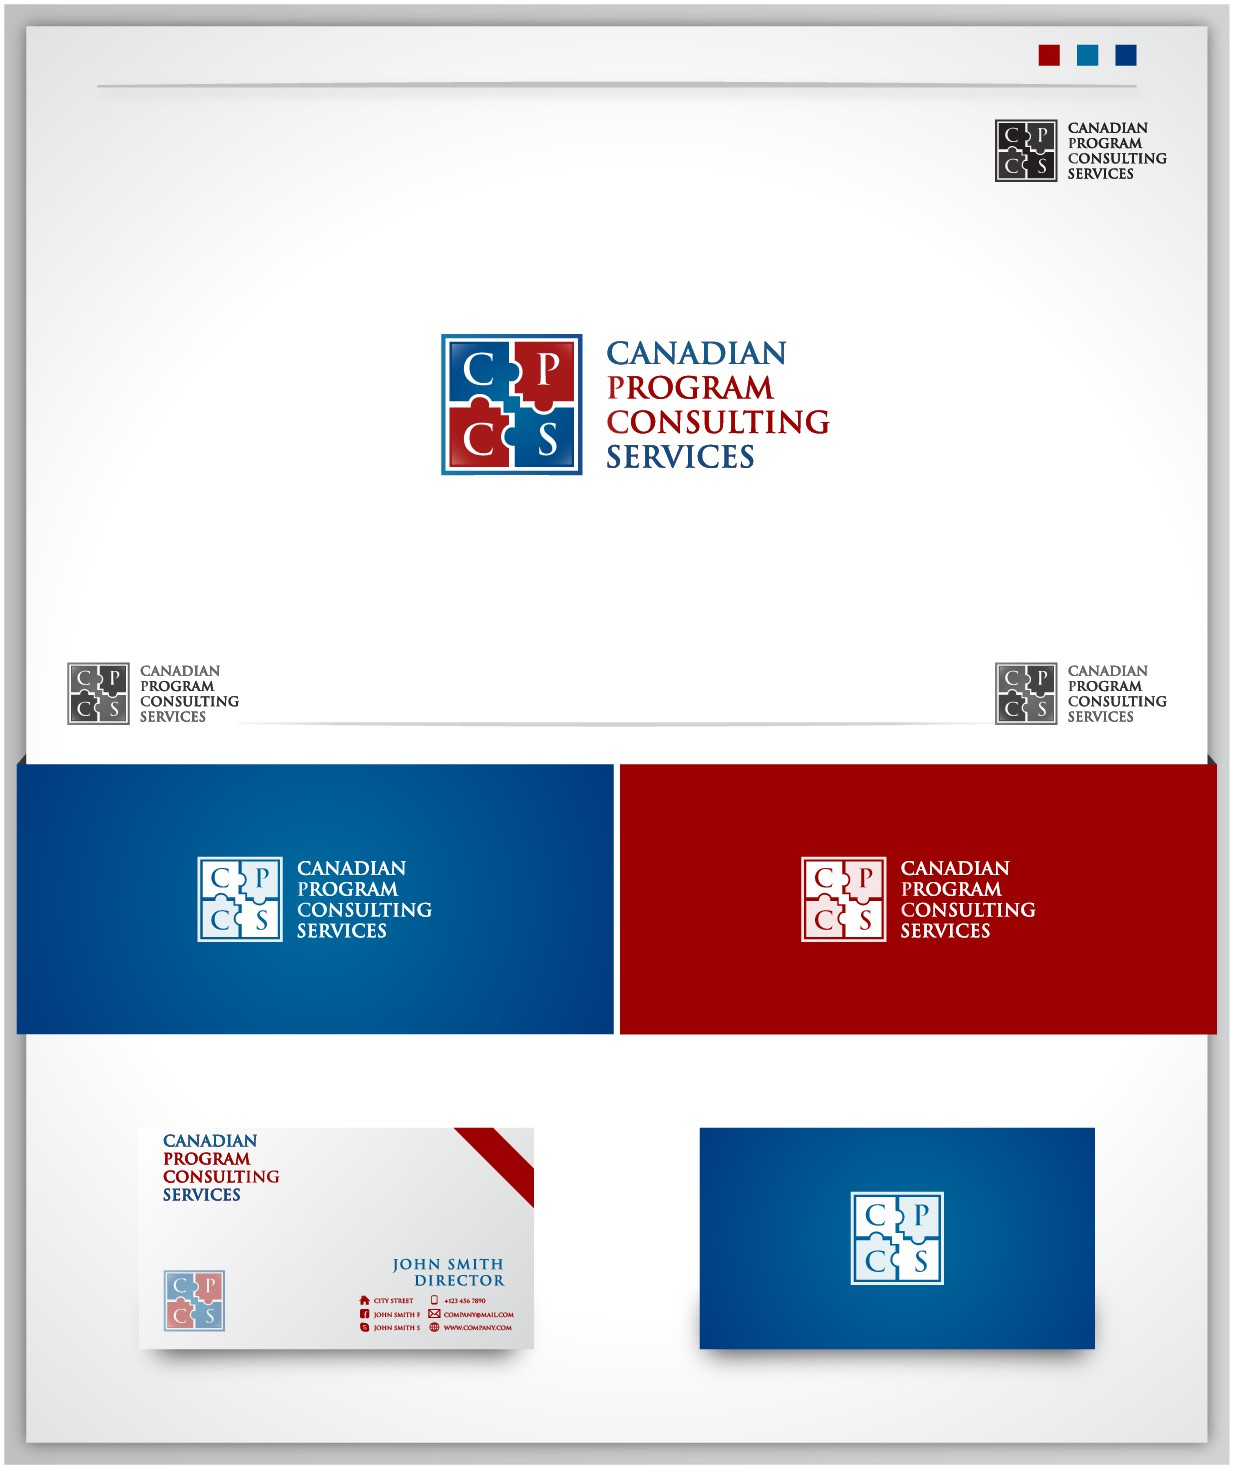 Canadian Program Consulting Services needs a new logo